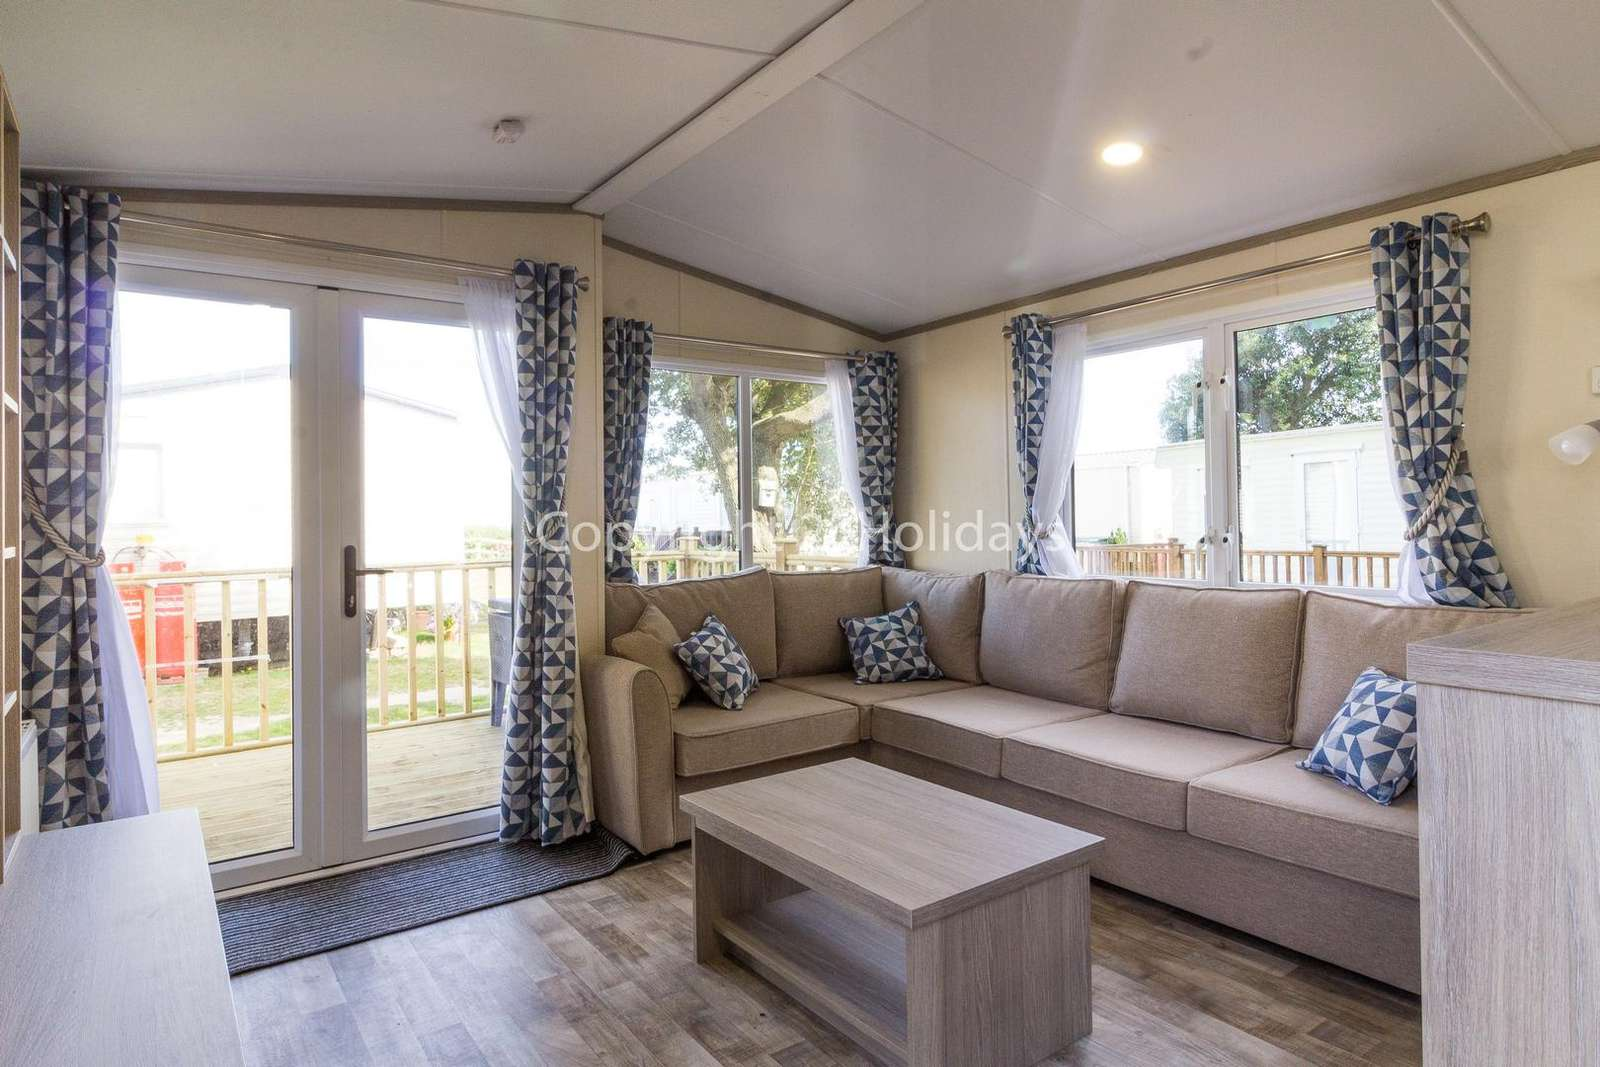 Spacious and modern living area, perfect for families!